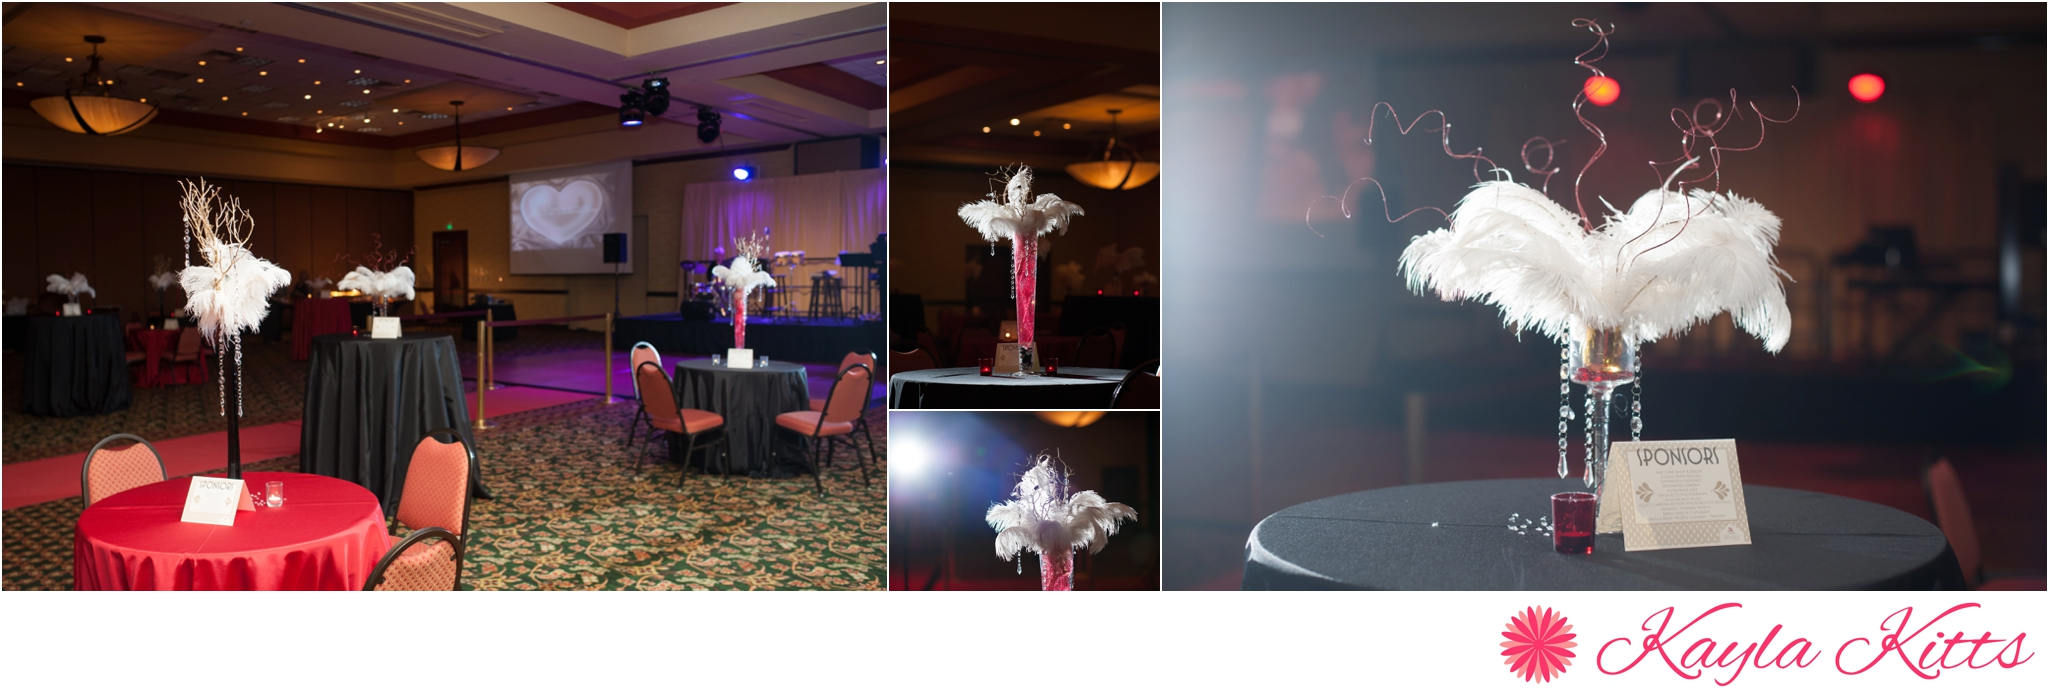 kayla kitts photography - perfect wedding guide - client appreciation party - albuqueruqe marriott_0002.jpg